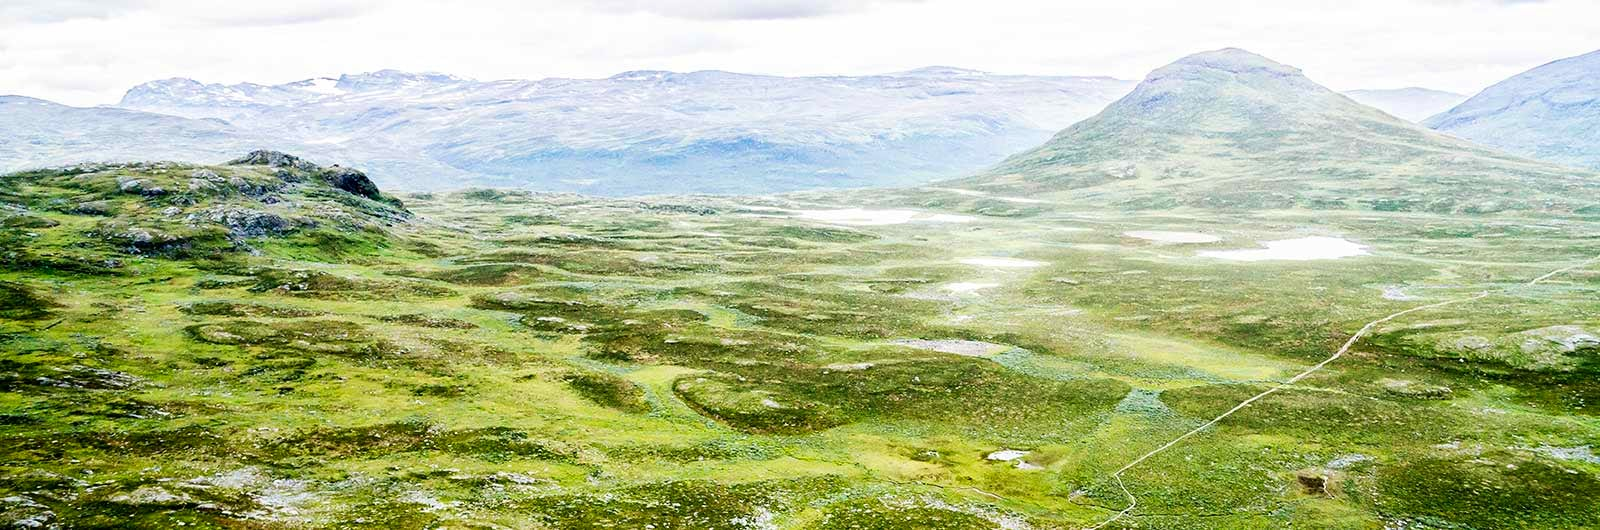 Abisko mountains looking lush in fog